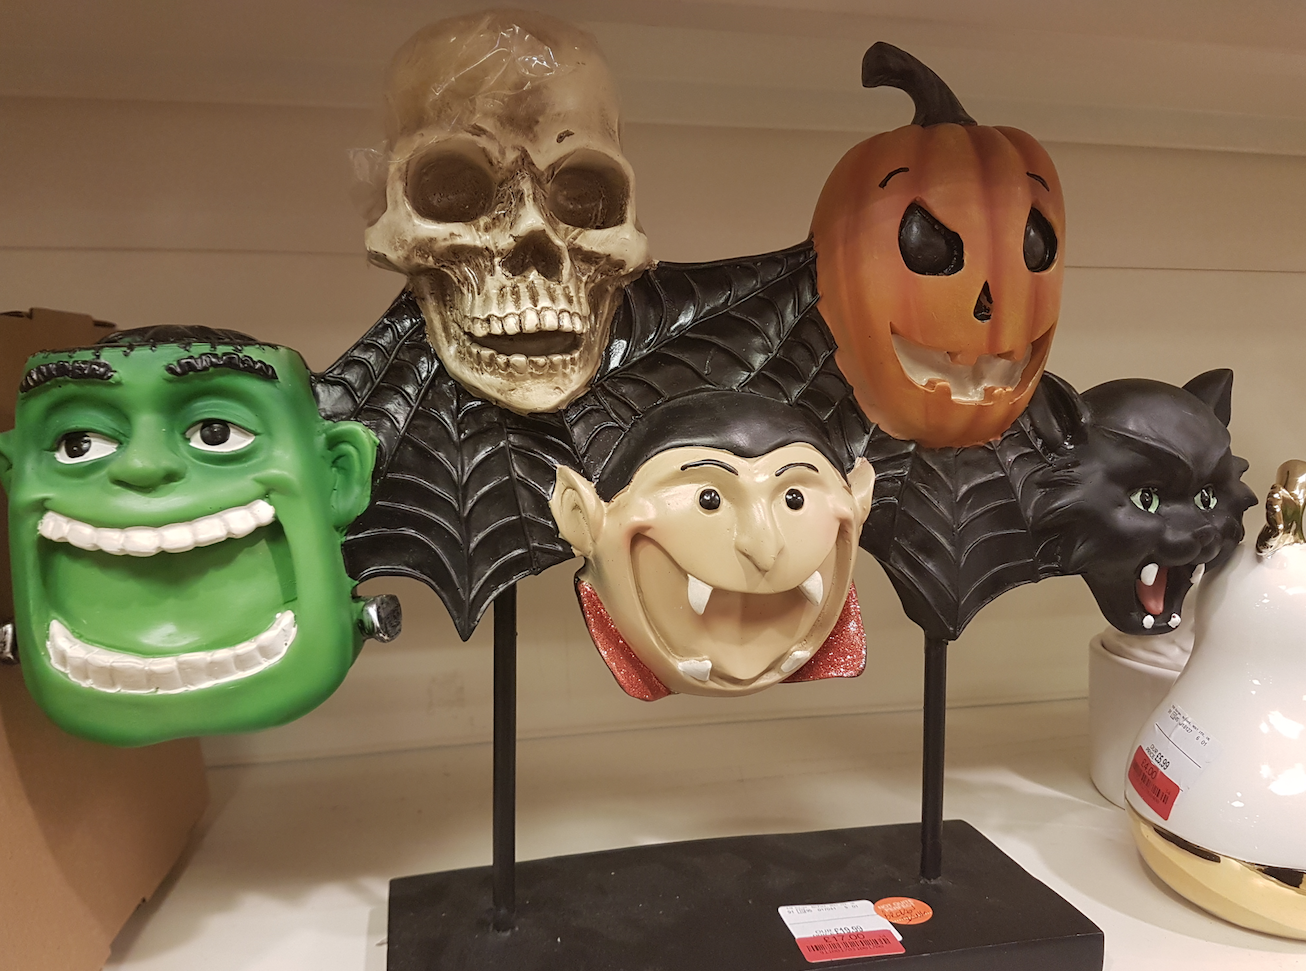 TK Maxx Store Review 2017 - Horror Display Stand